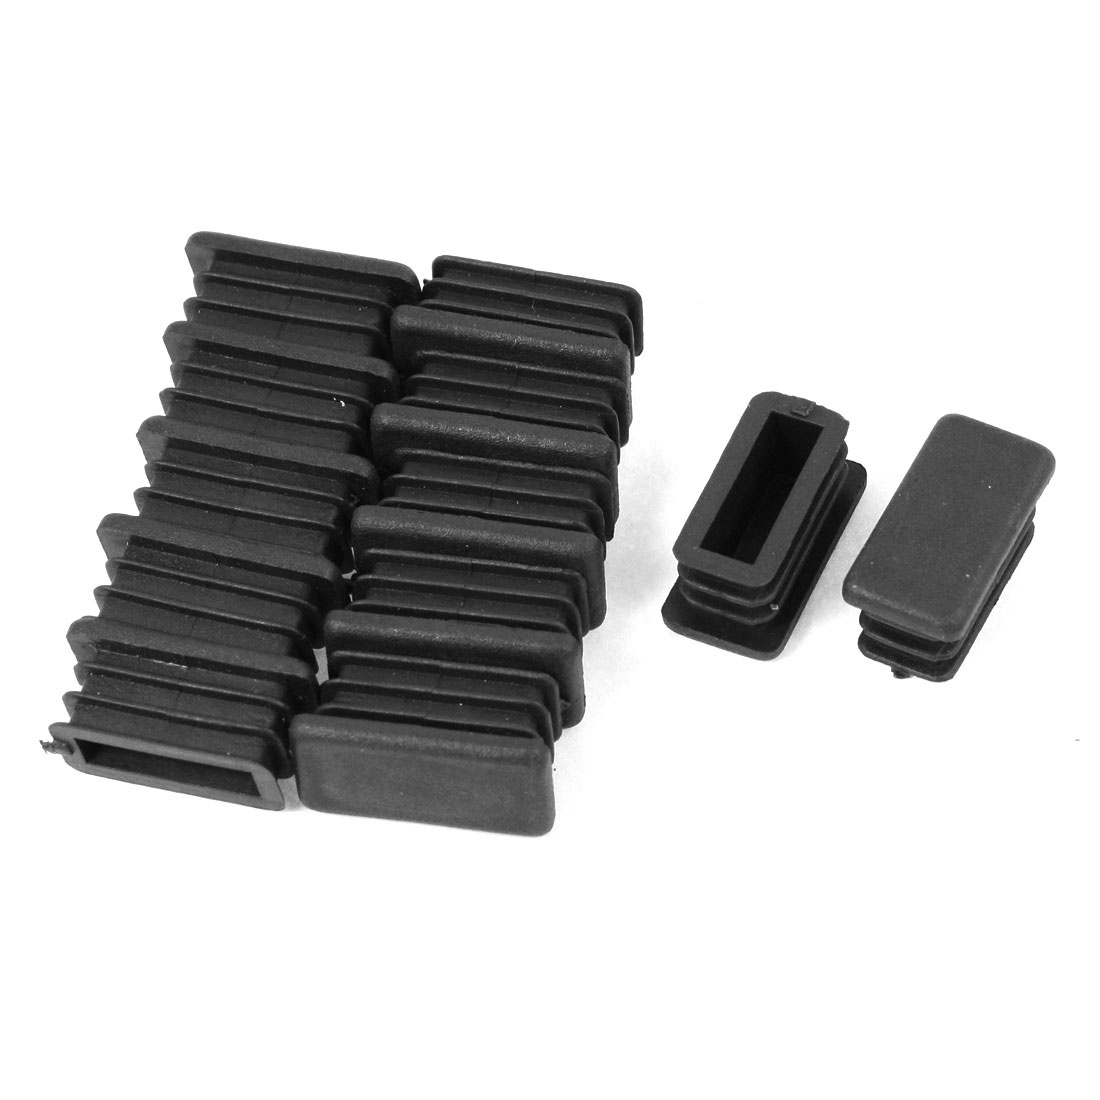 12 Pcs 13mm x 26mm Plastic Ribbed Blanking End Caps Rectangle Tubing Tube Pipe Insert Black